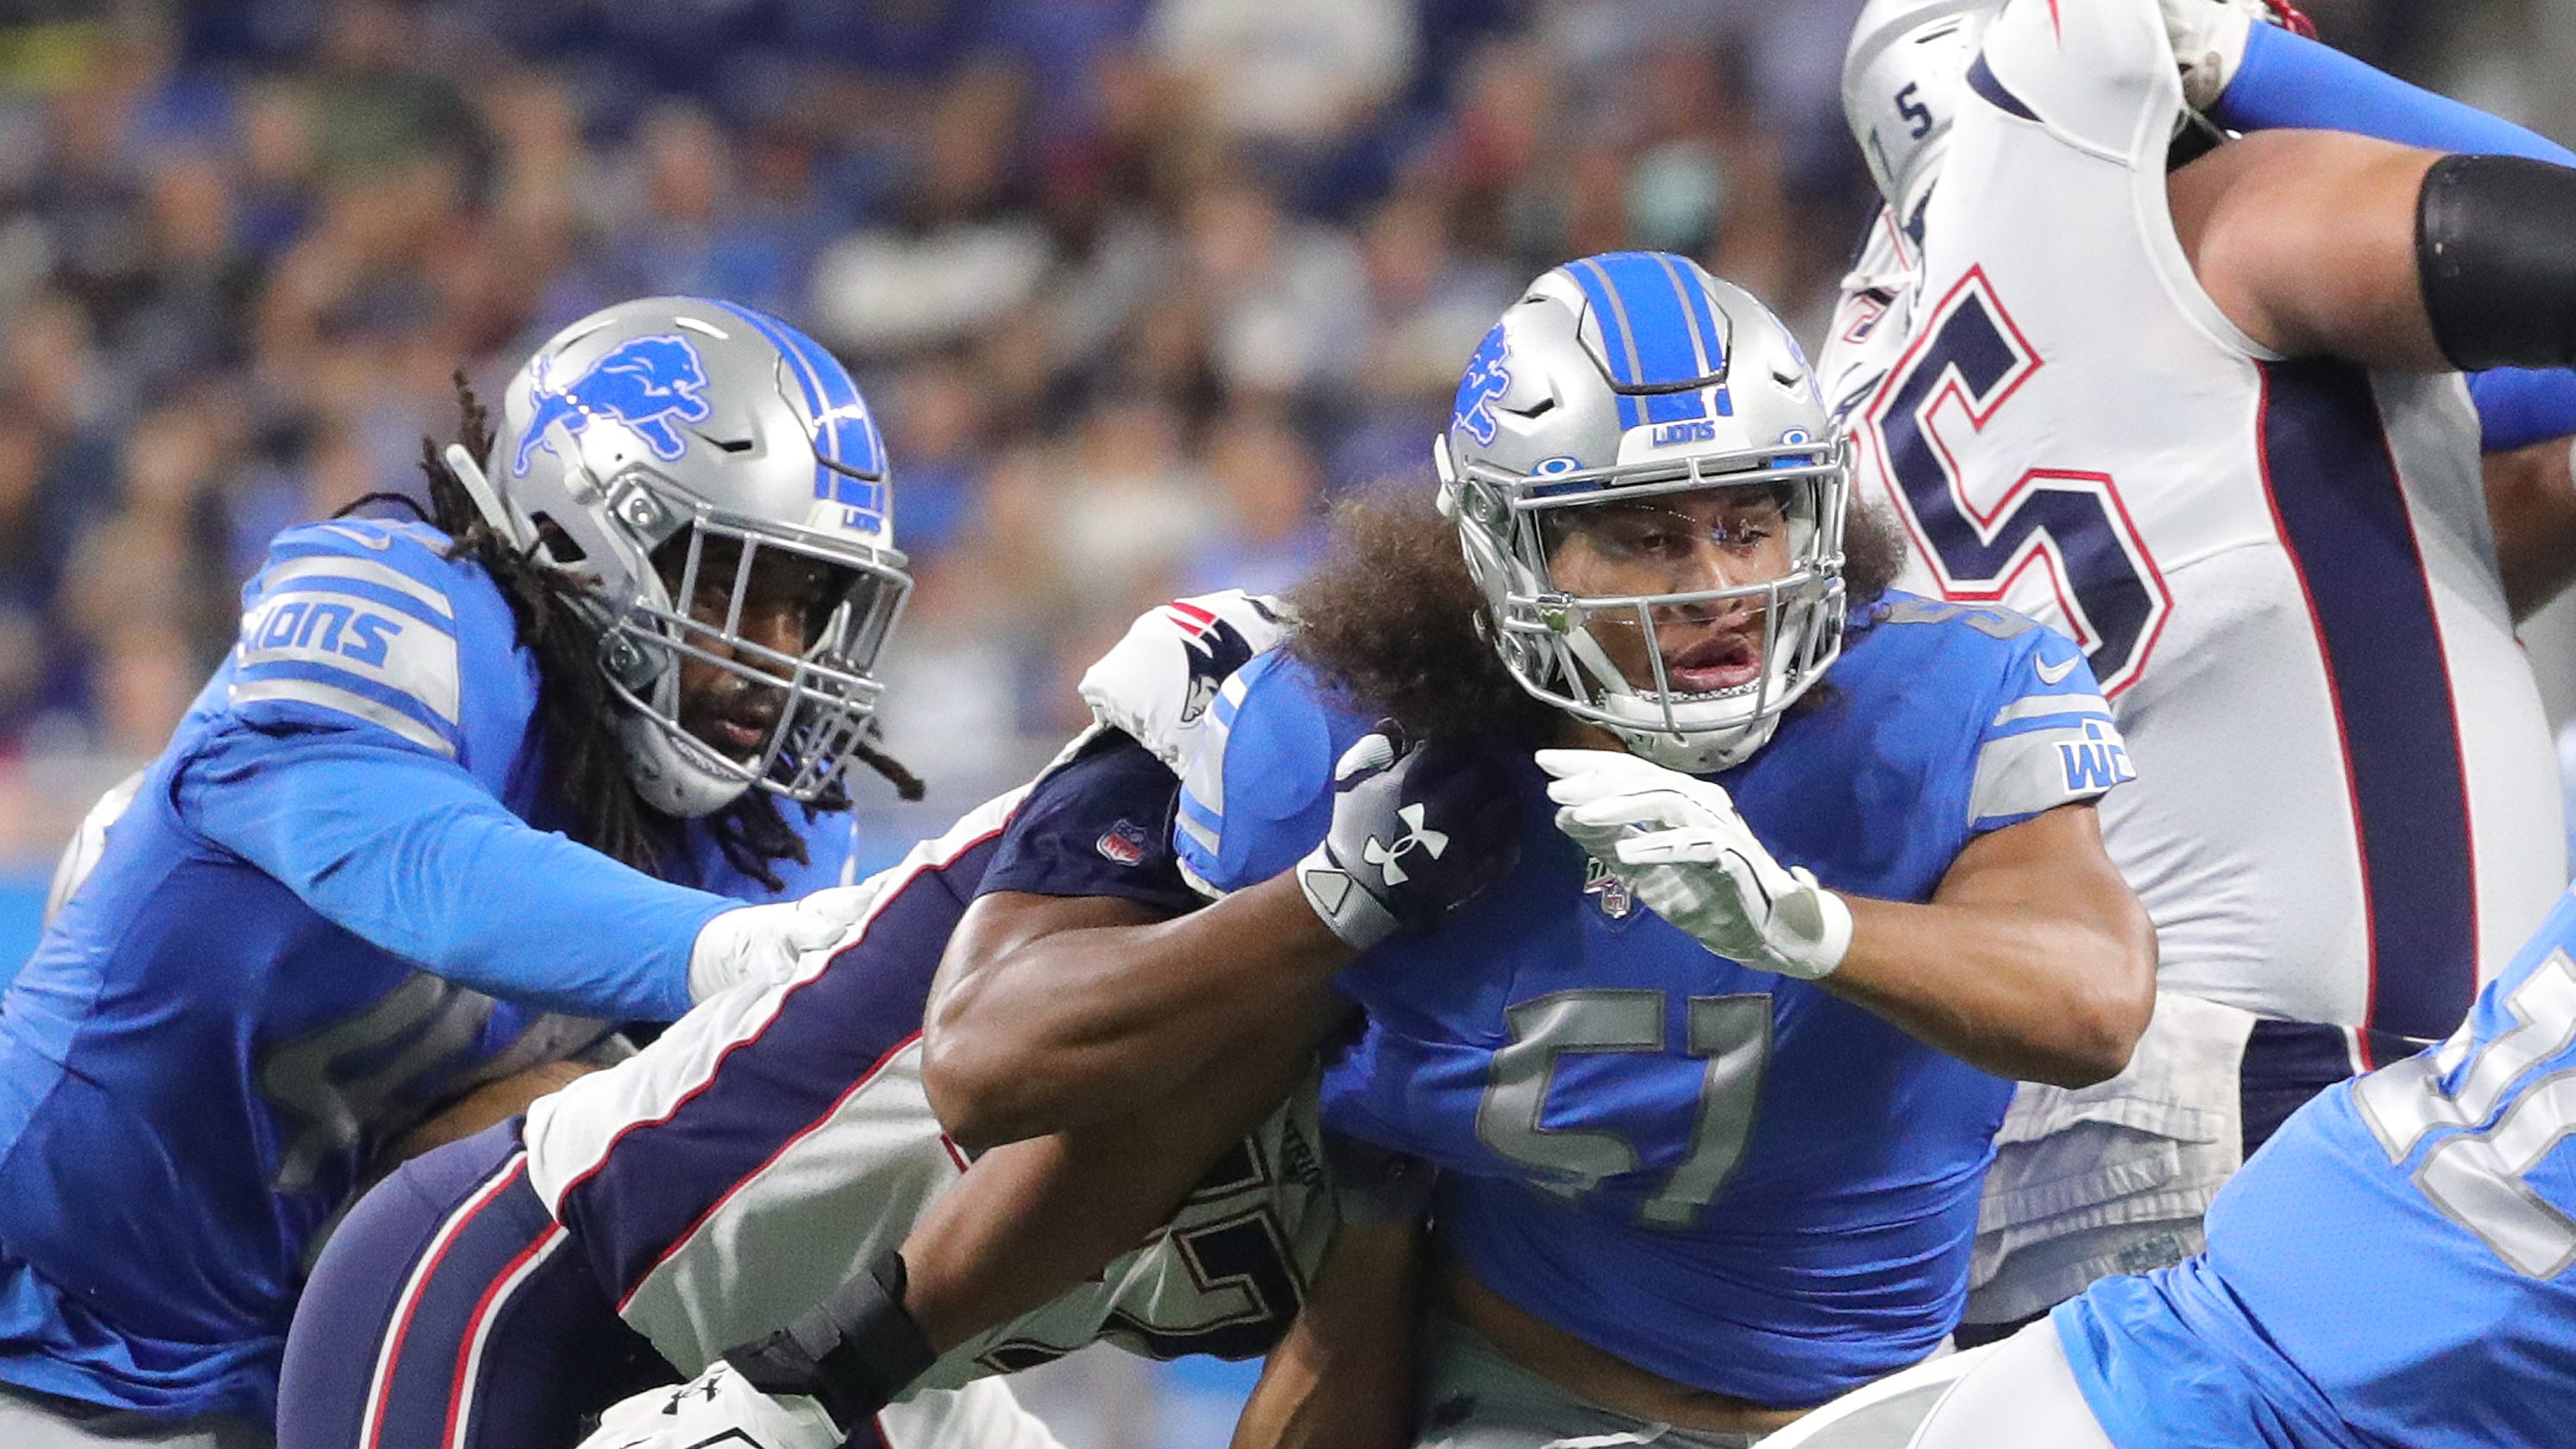 a24cb538 Game recap: Detroit Lions lose preseason opener vs. Patriots, 31-3